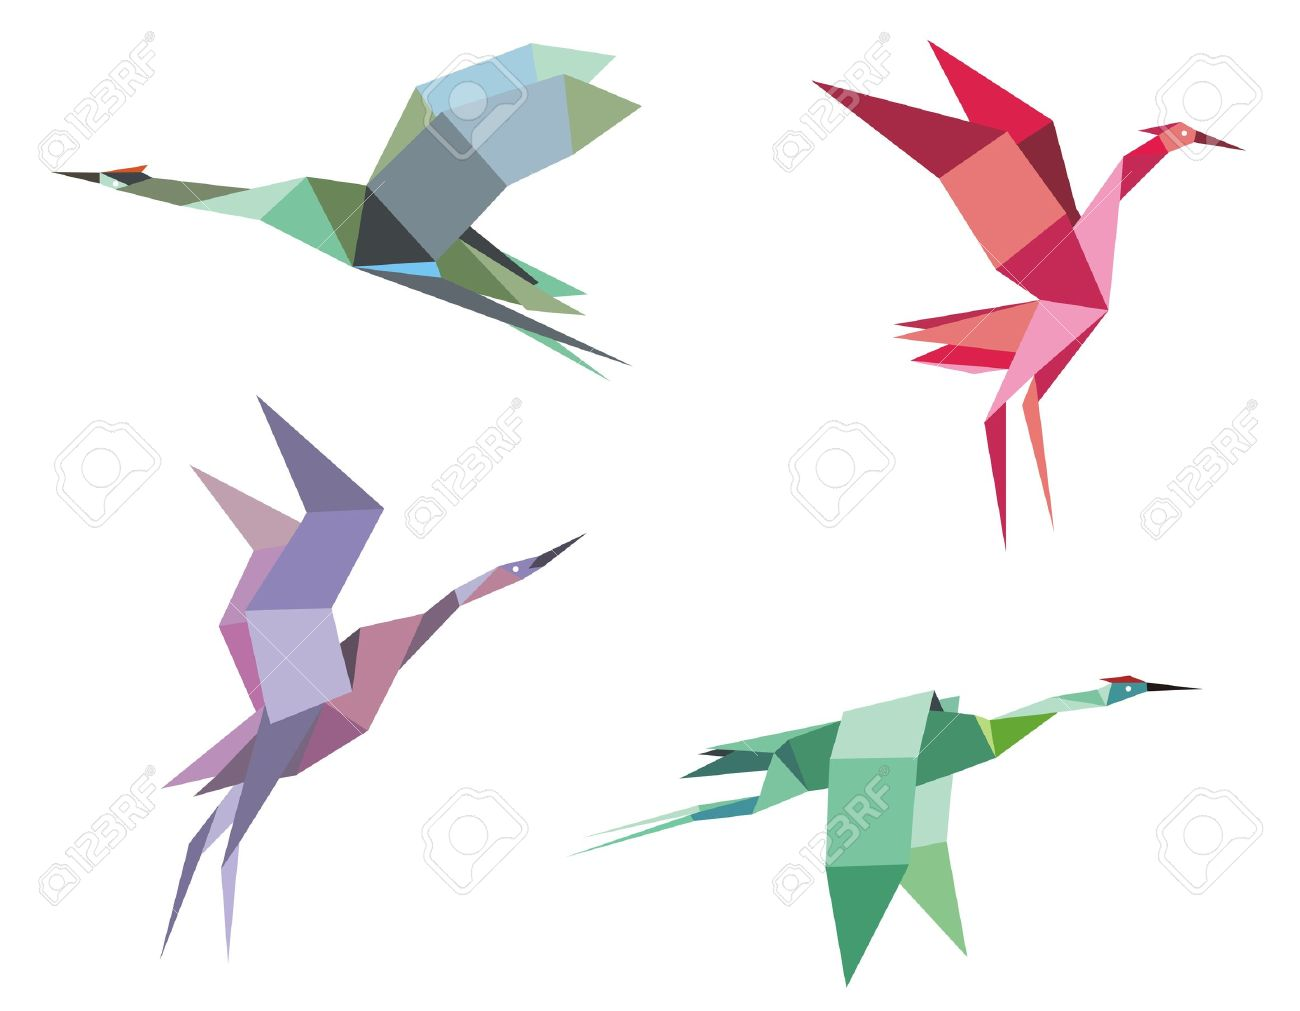 Cranes and herons birds in origami paper style for ecological or another design Stock Vector - 18380613